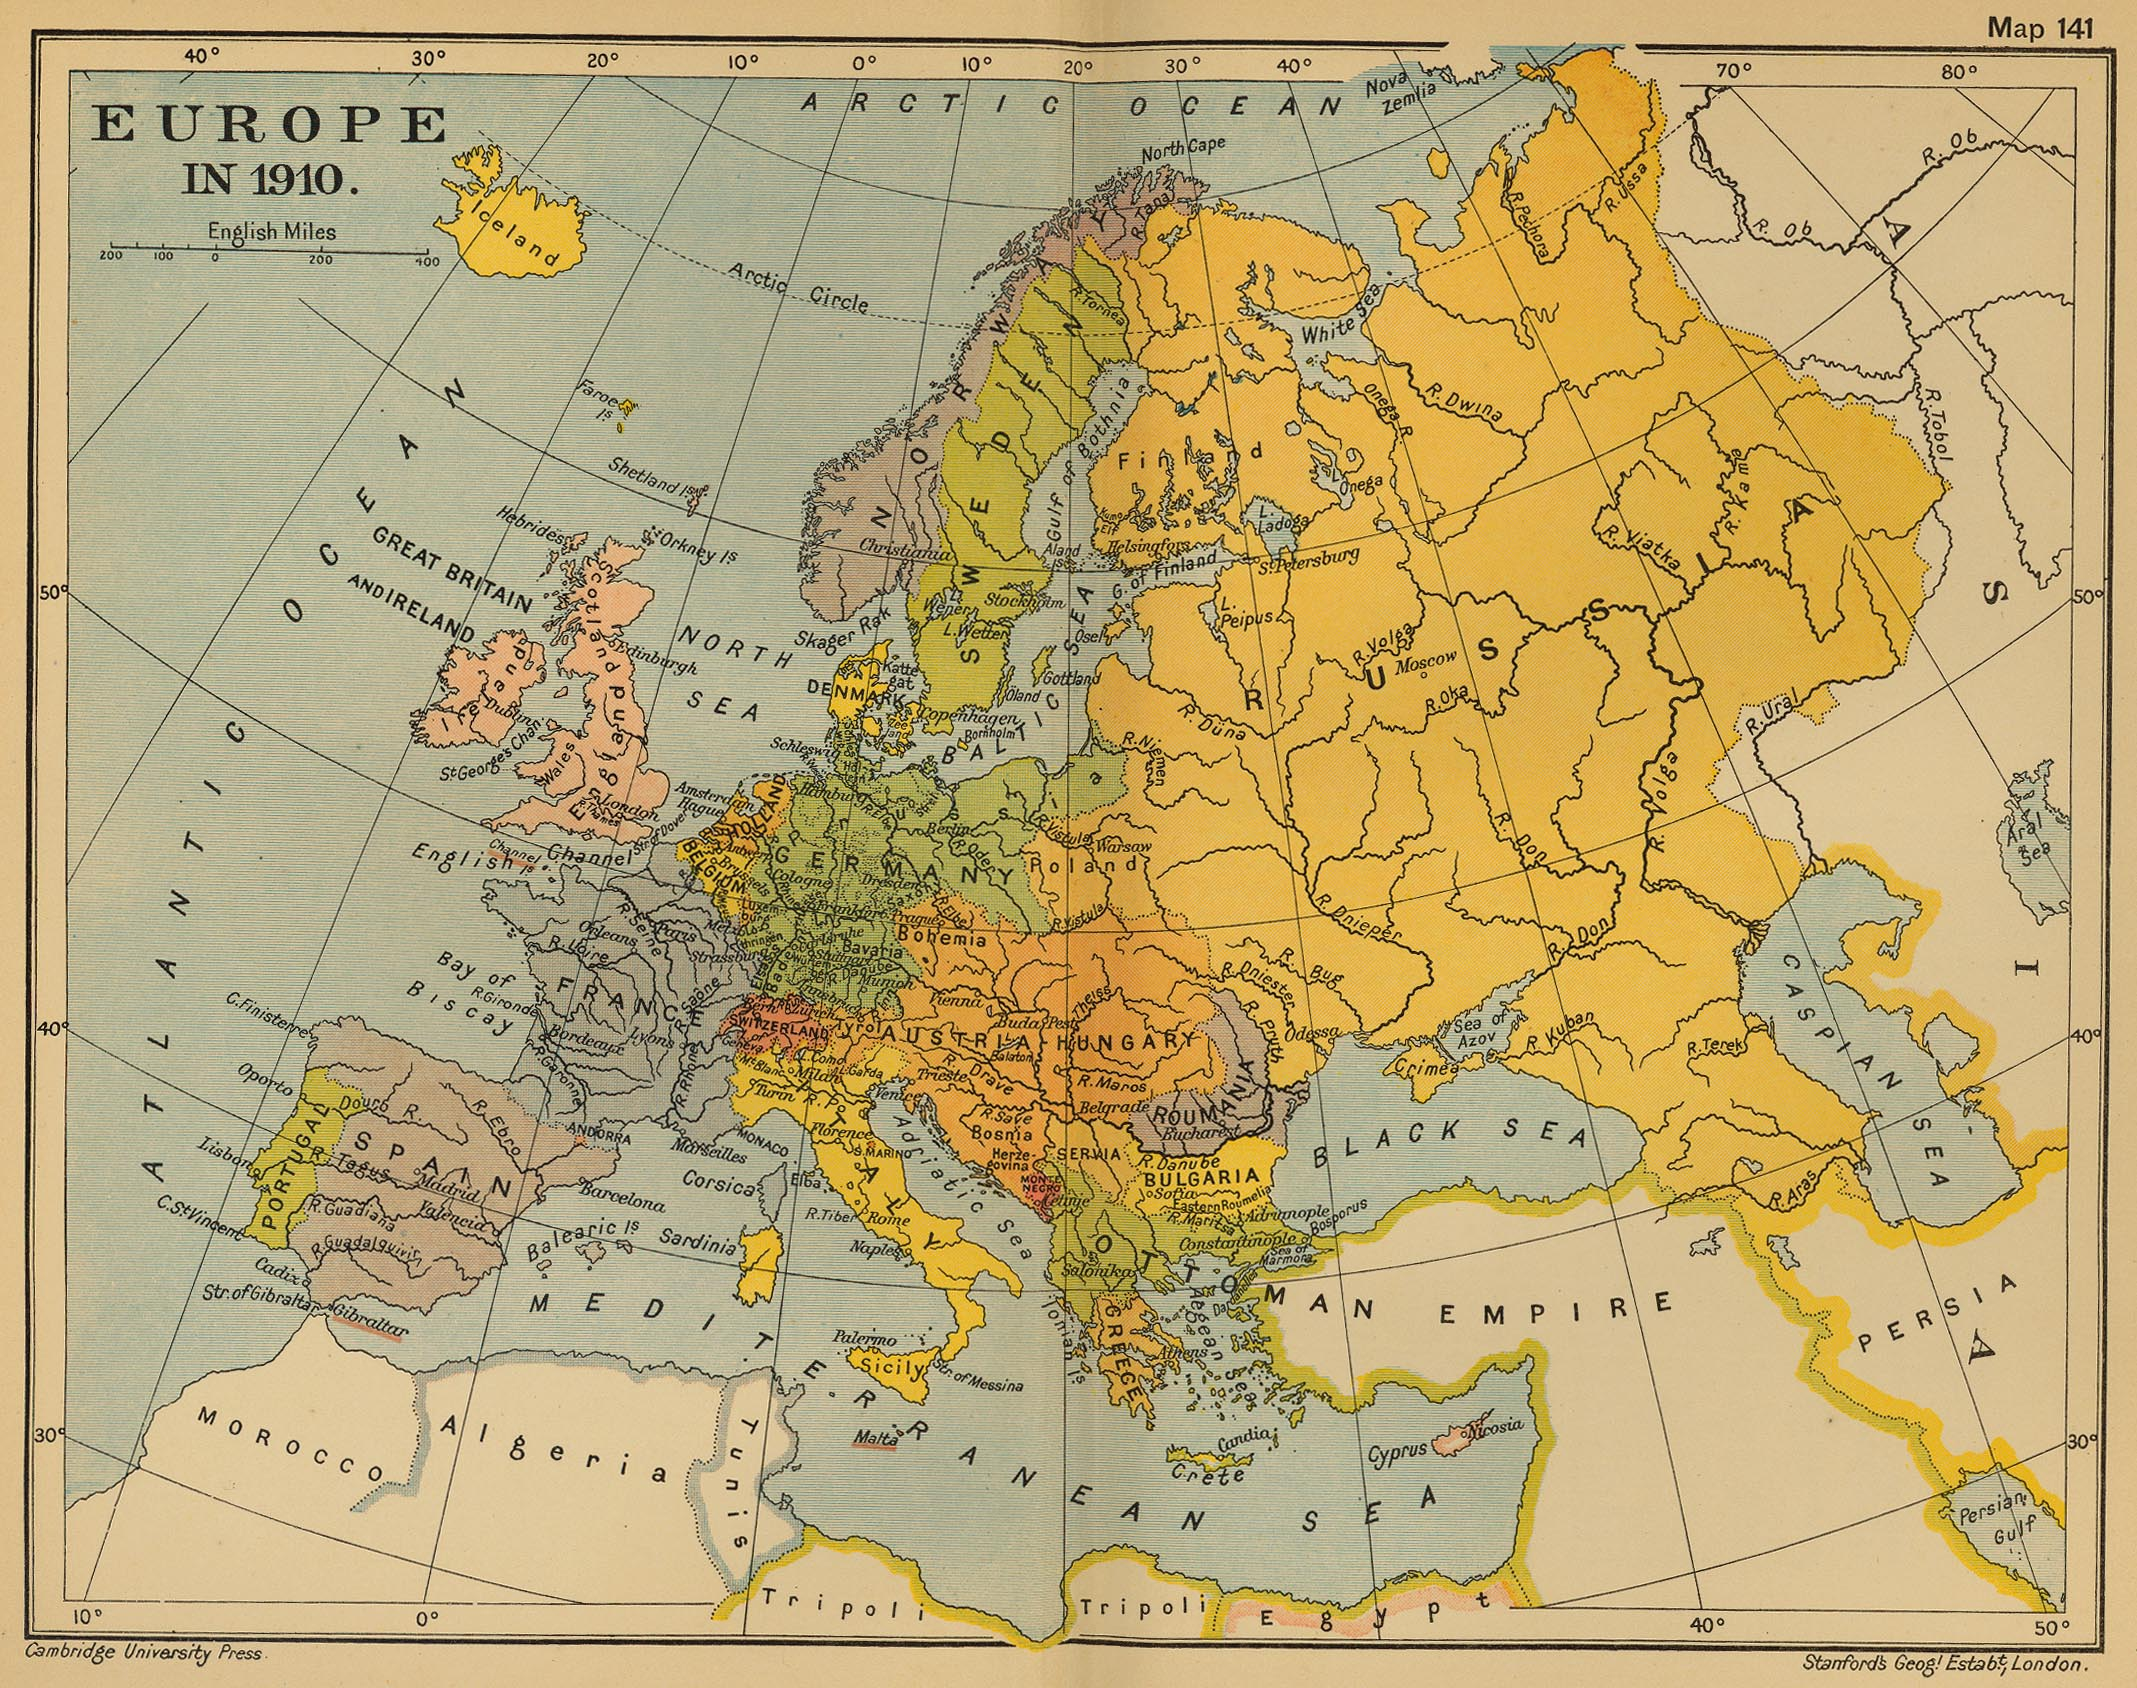 Europe in 1910